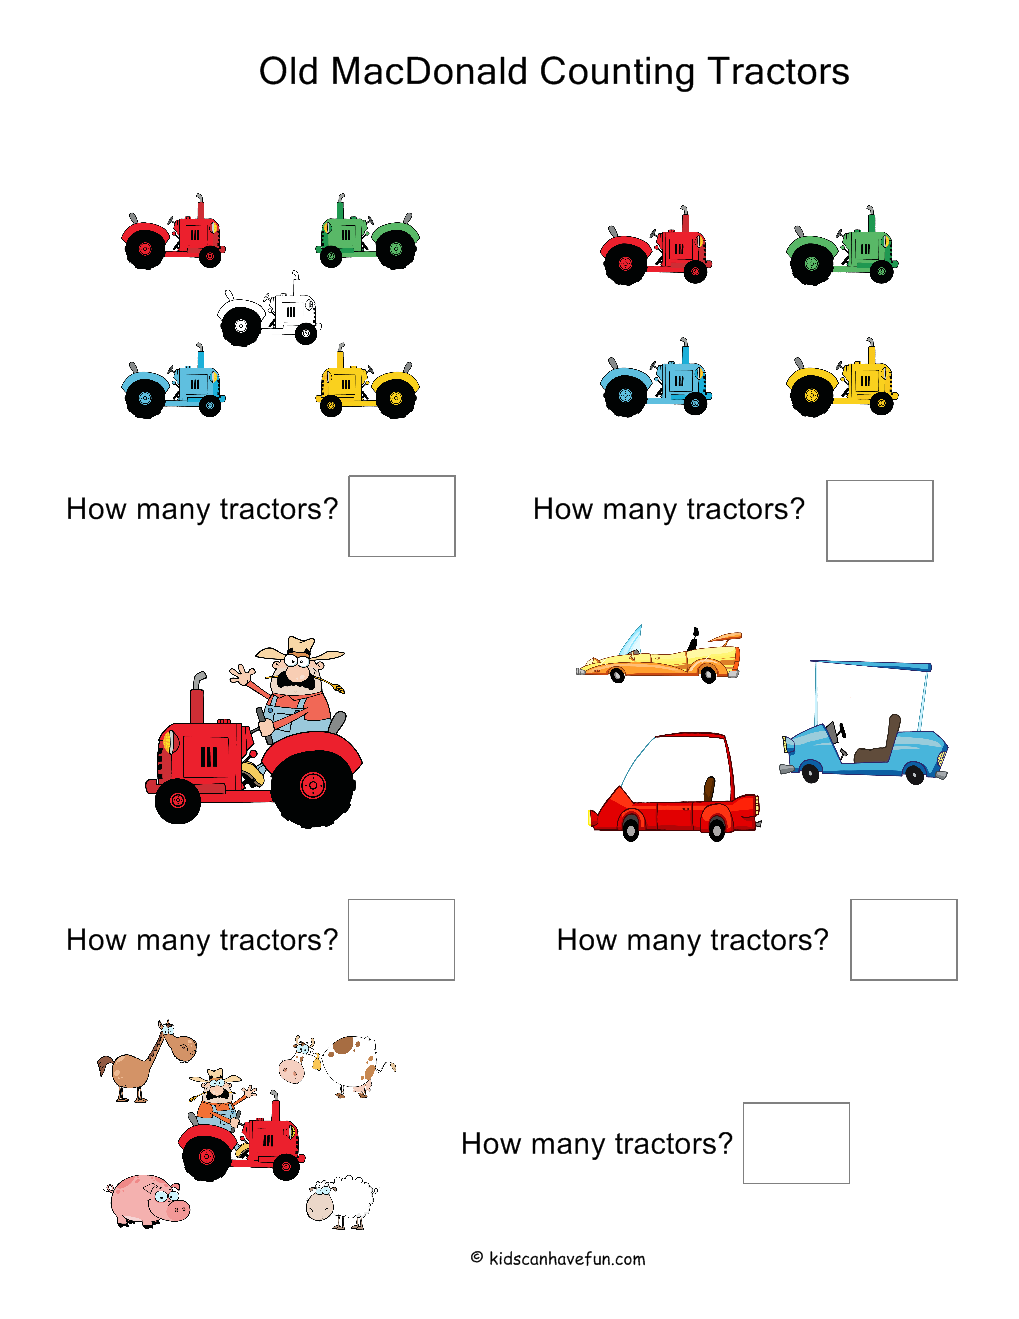 Old MacDonald Counting Tractors Worksheet http://www.kidscanhavefun ...